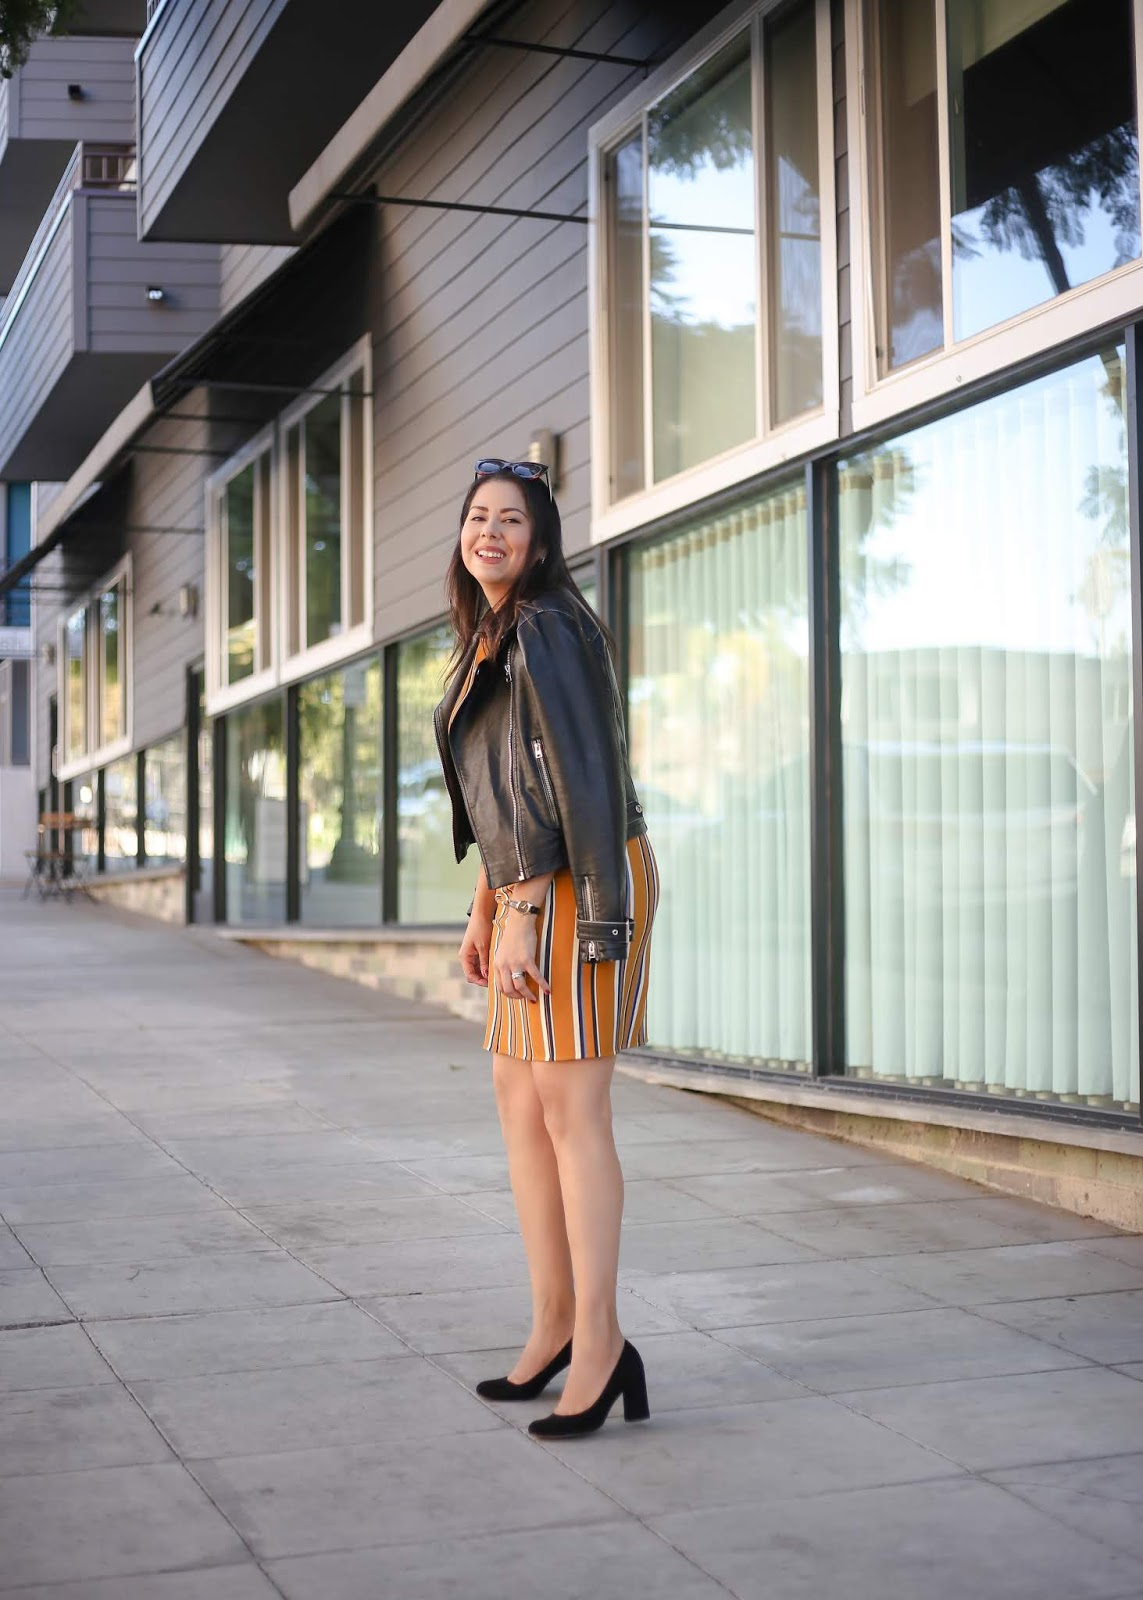 reversible dress with moto jacket, how to wear a striped dress with moto jacket, san diego fashion blogger in little italy